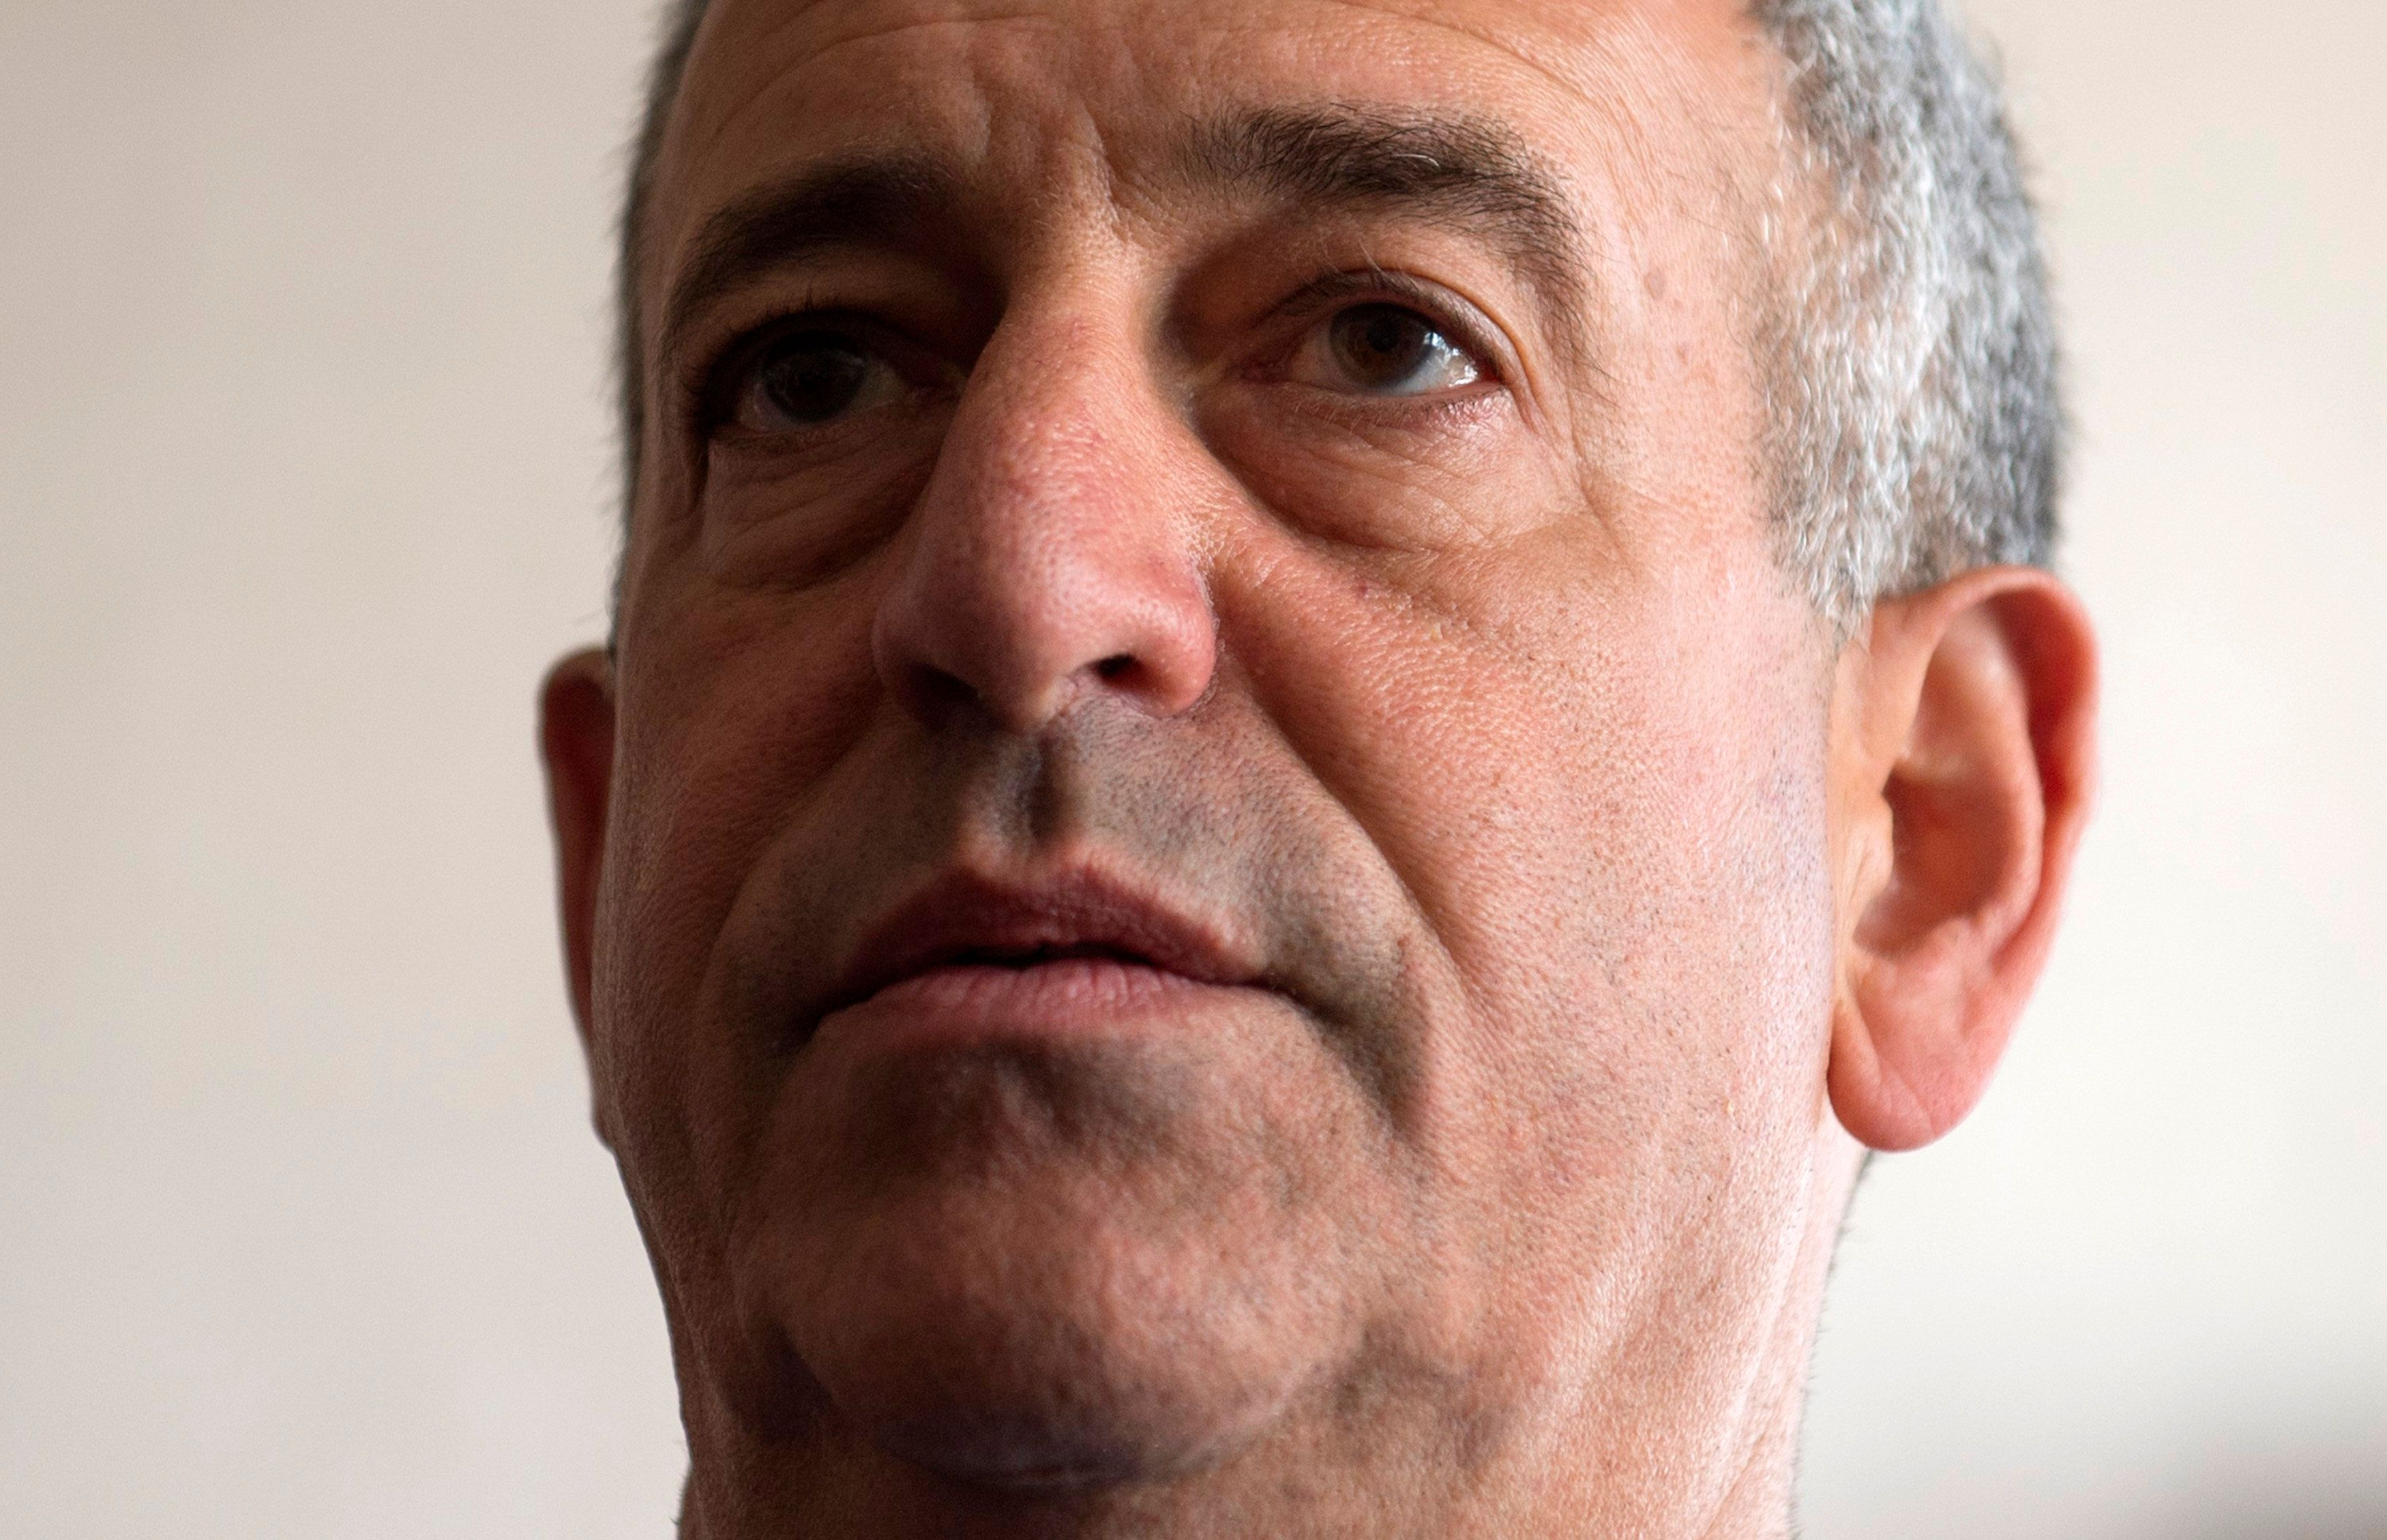 Russ Feingold, U.S. Special Envoy for the Great Lakes Region of Africa and the Democratic Republic of Congo, speaks during a news briefing at the Palais de la Nation in Kinshasa May 4, 2014. REUTERS/Saul Loeb/Pool (DEMOCRATIC REPUBLIC OF CONGO - Tags: POLITICS HEADSHOT)